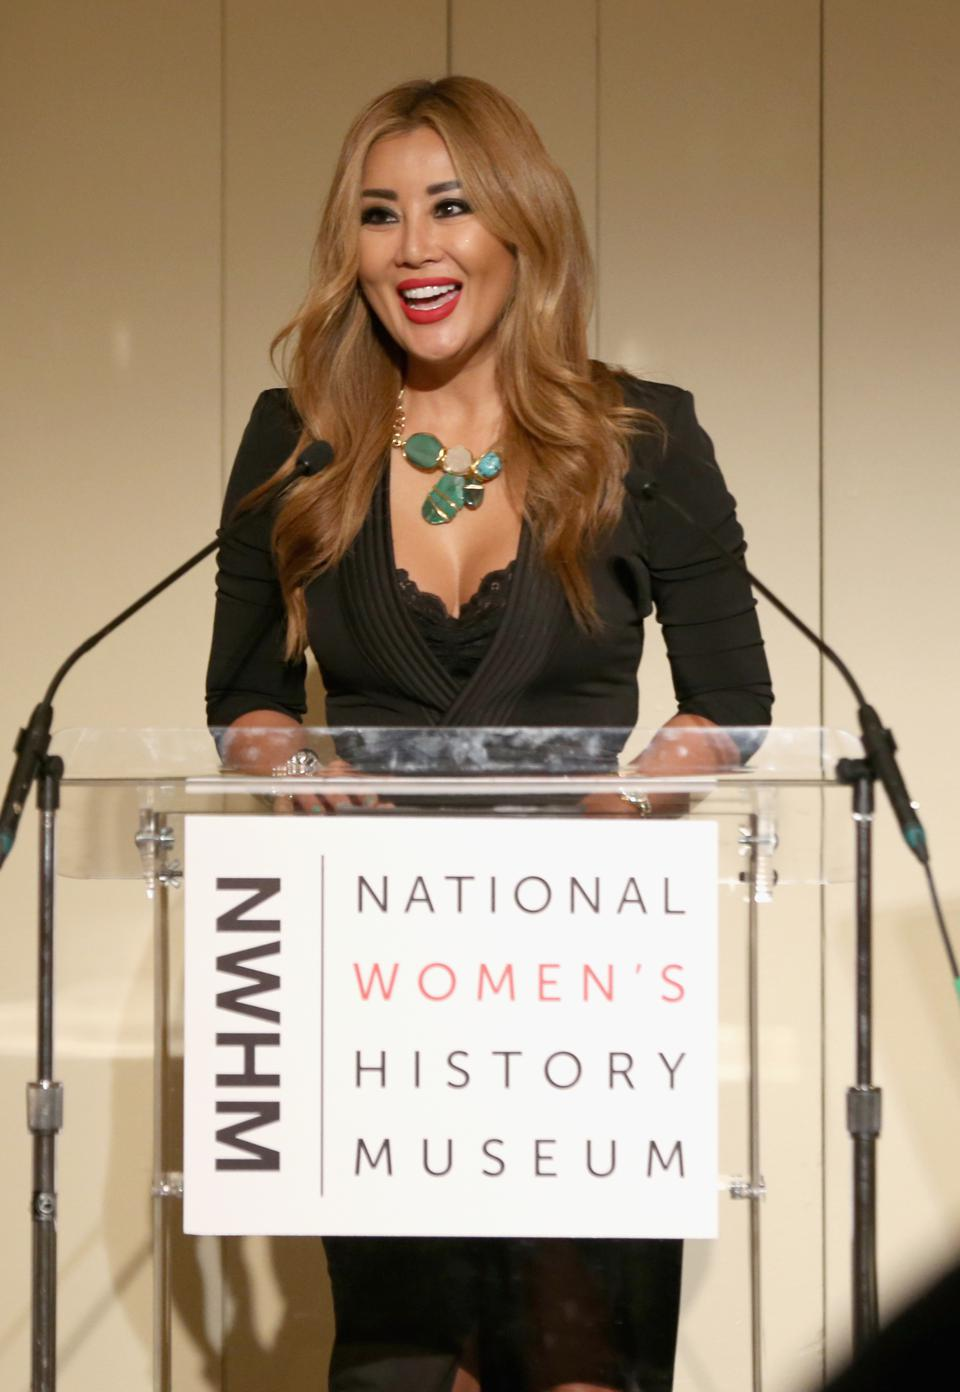 National Women's History Museum 5th Annual Women Making History Brunch Presented By Glamour And Lifeway Foods